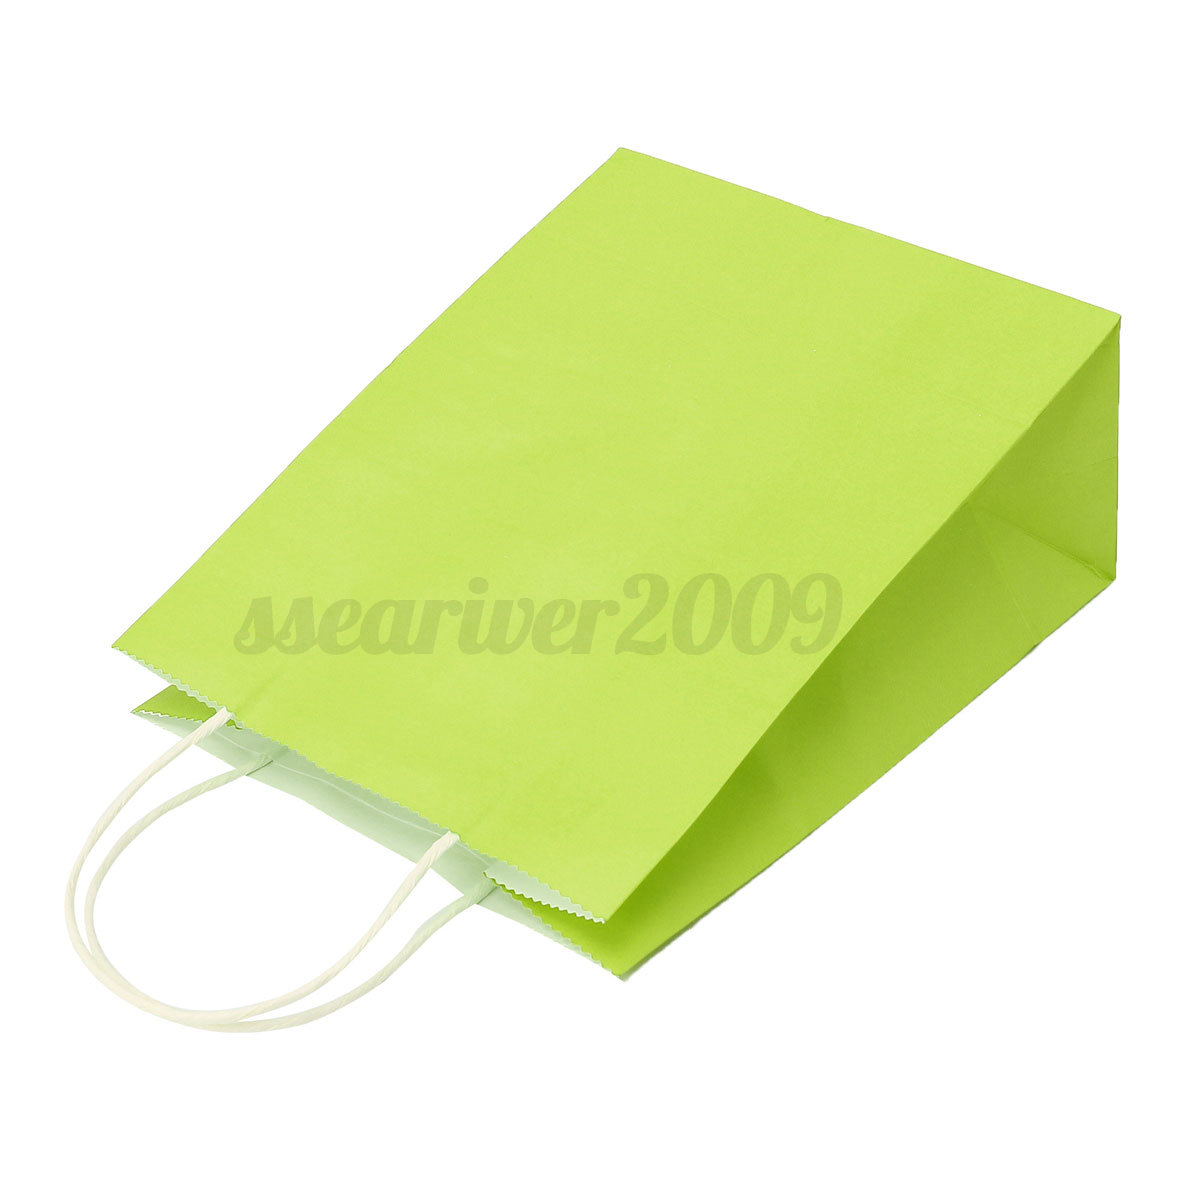 is tissue paper recyclable Tissues tissues are made from paper but they are not accepted in mixed paper recycling streams because they could potentially spread disease to the staff at the recycling center or paper mill.